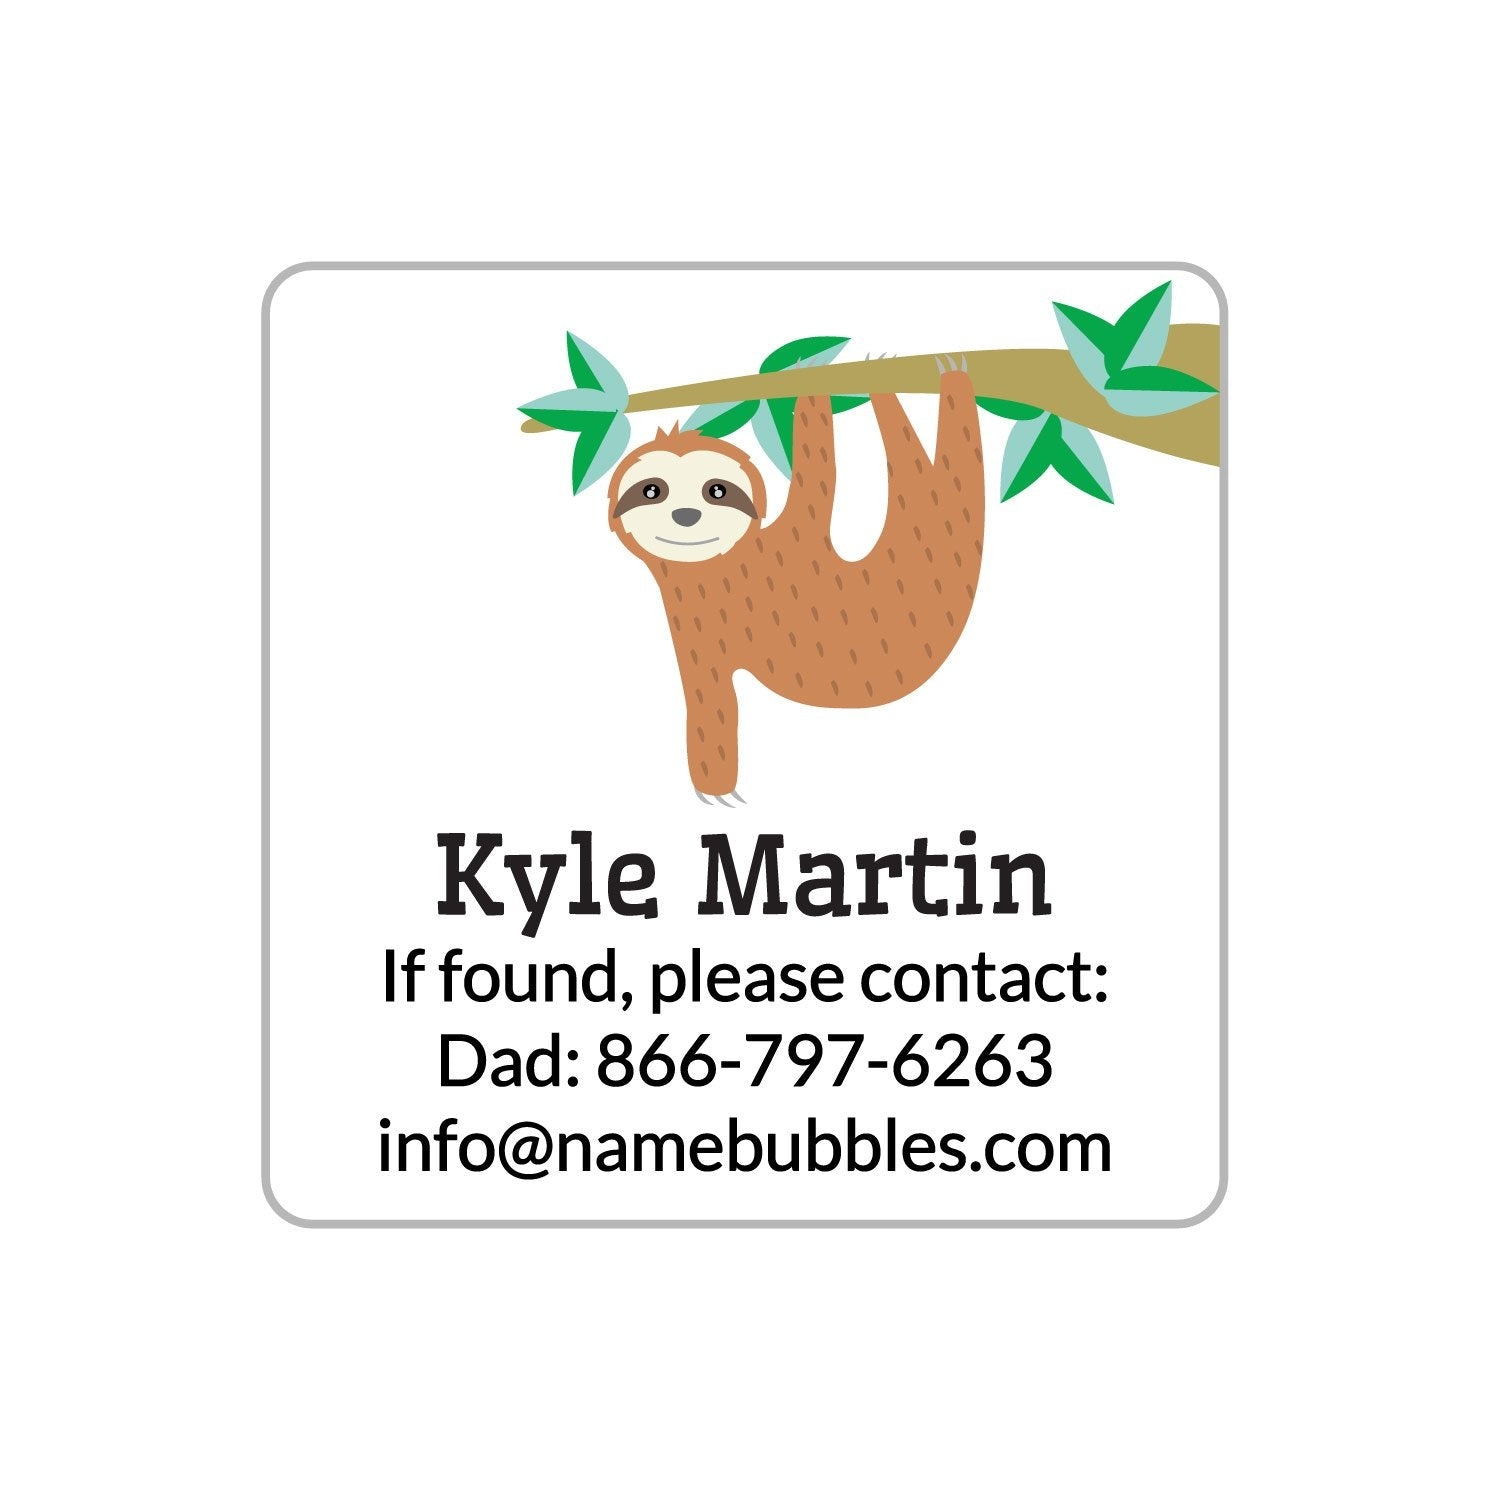 information stickers with sloth hanging from tree branch design